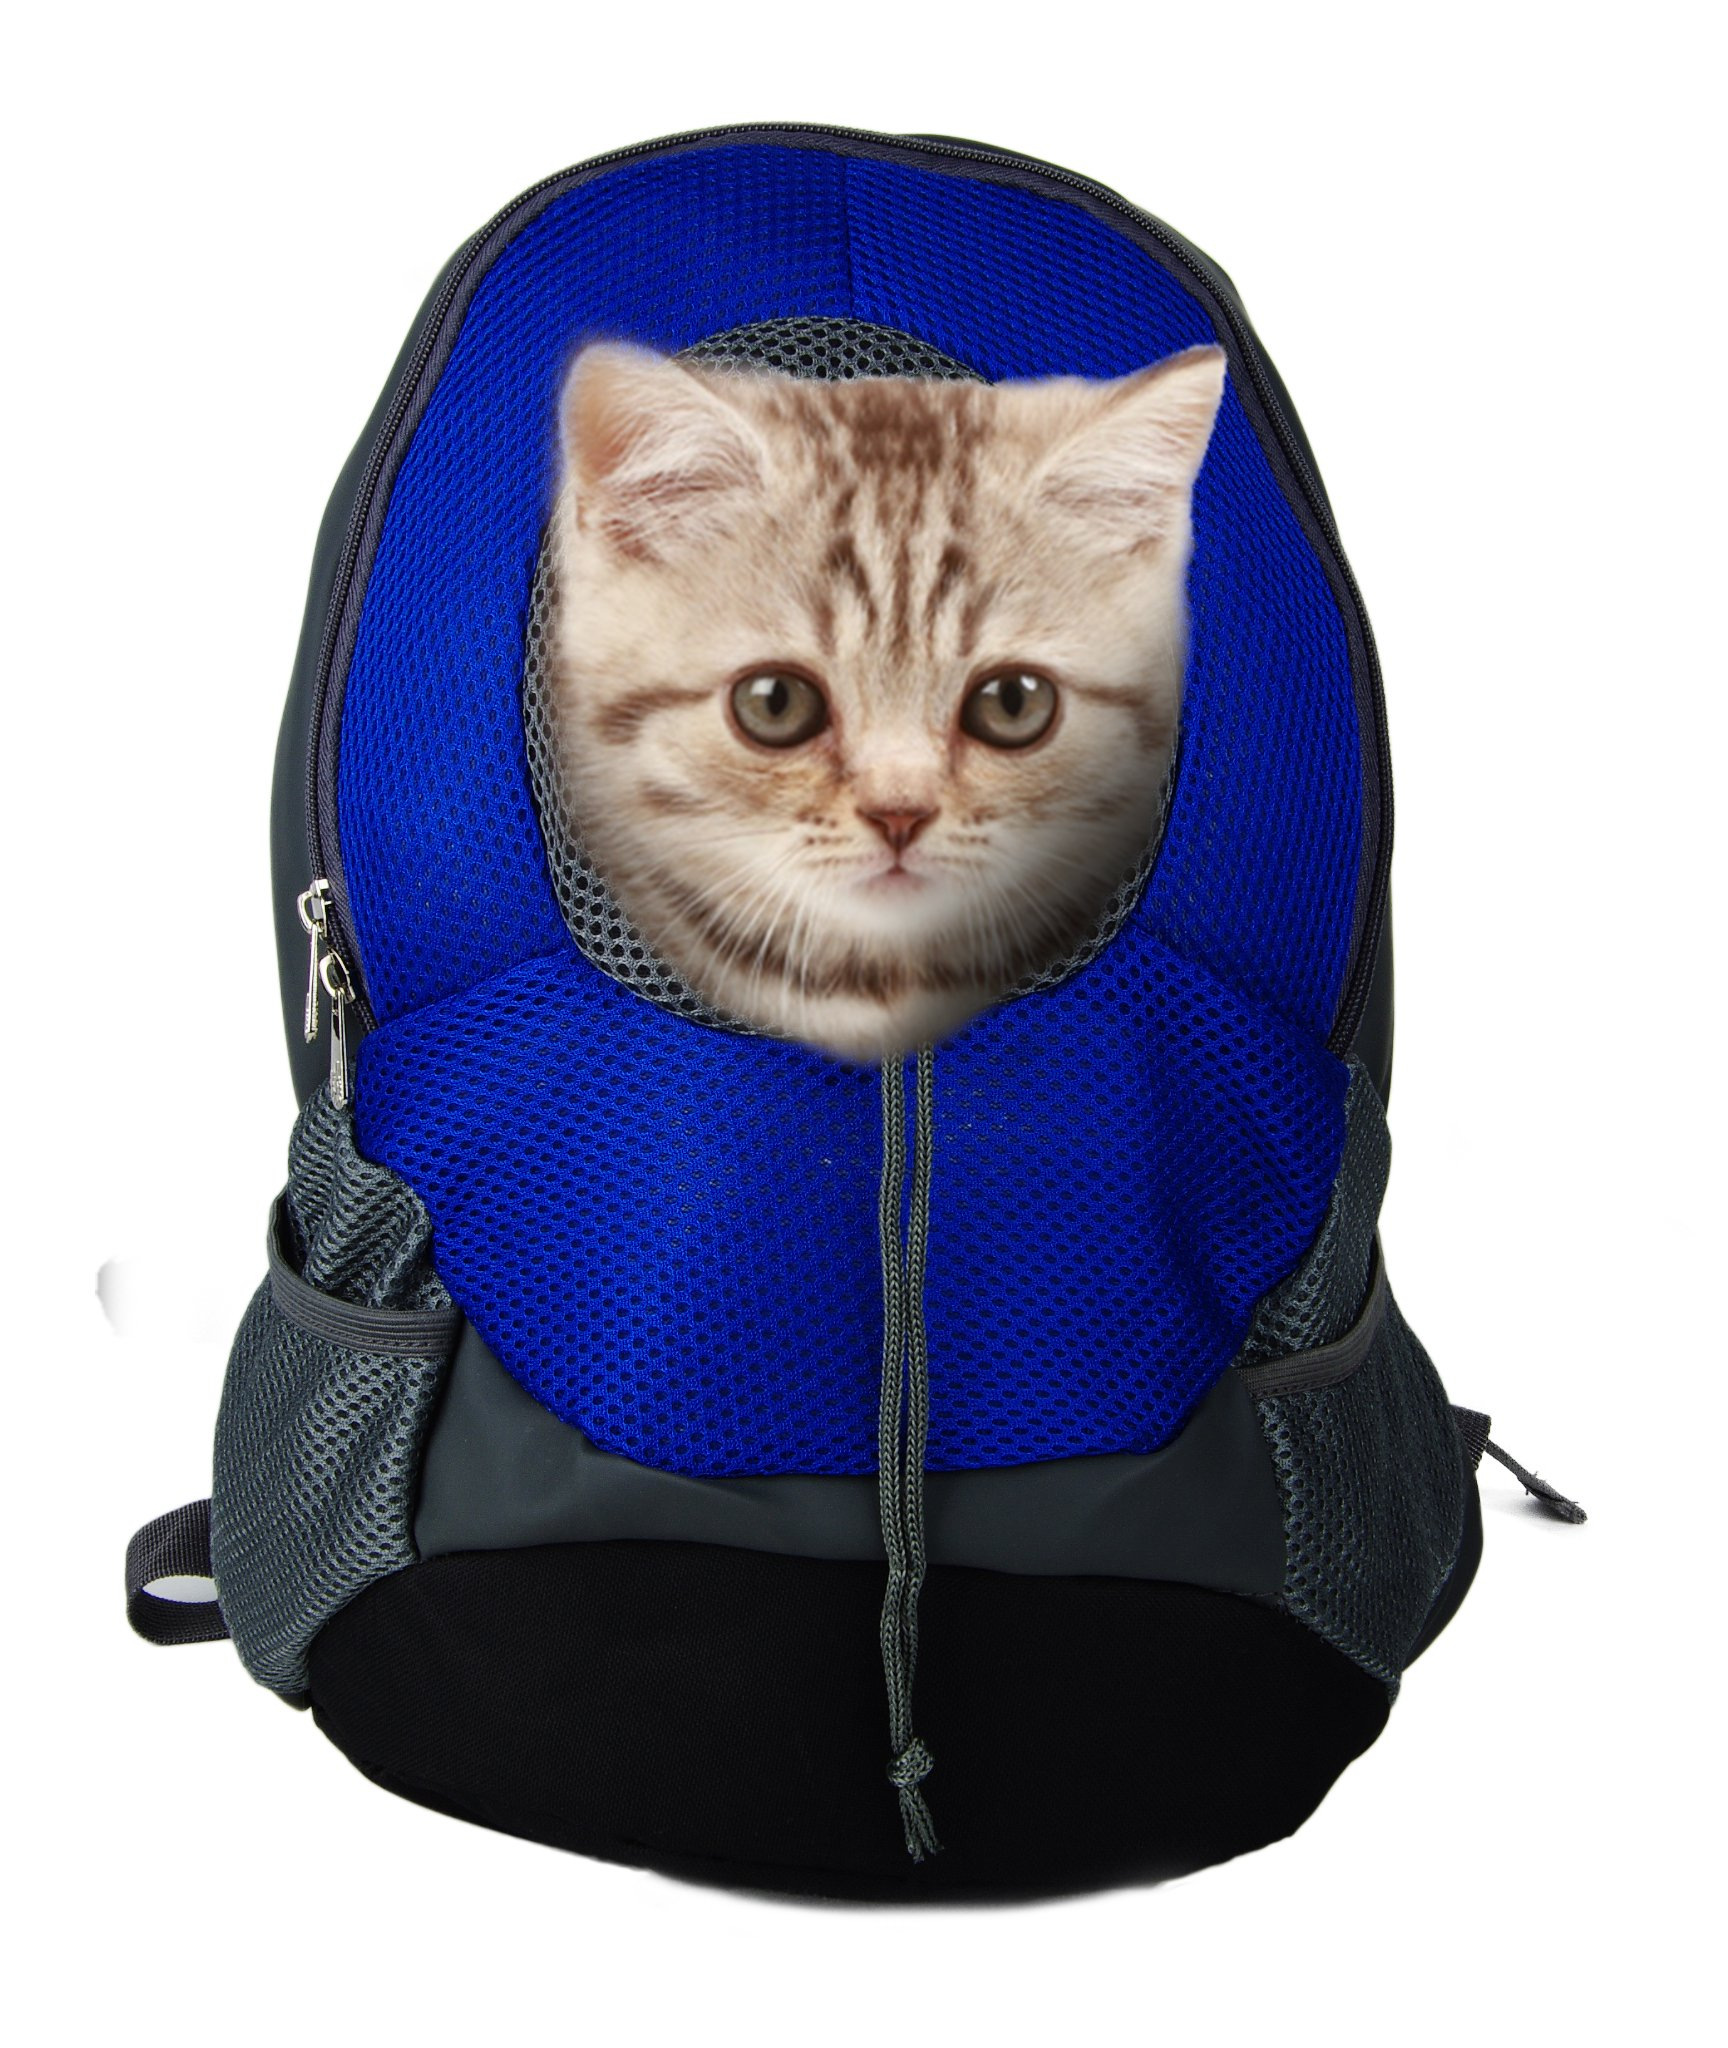 Pet Carrier Backpacks Adjustable Dogs Cats Breathable Oxford Travel Carriers for Walking, Hiking, Bike and Motorcycle (S, Blue)